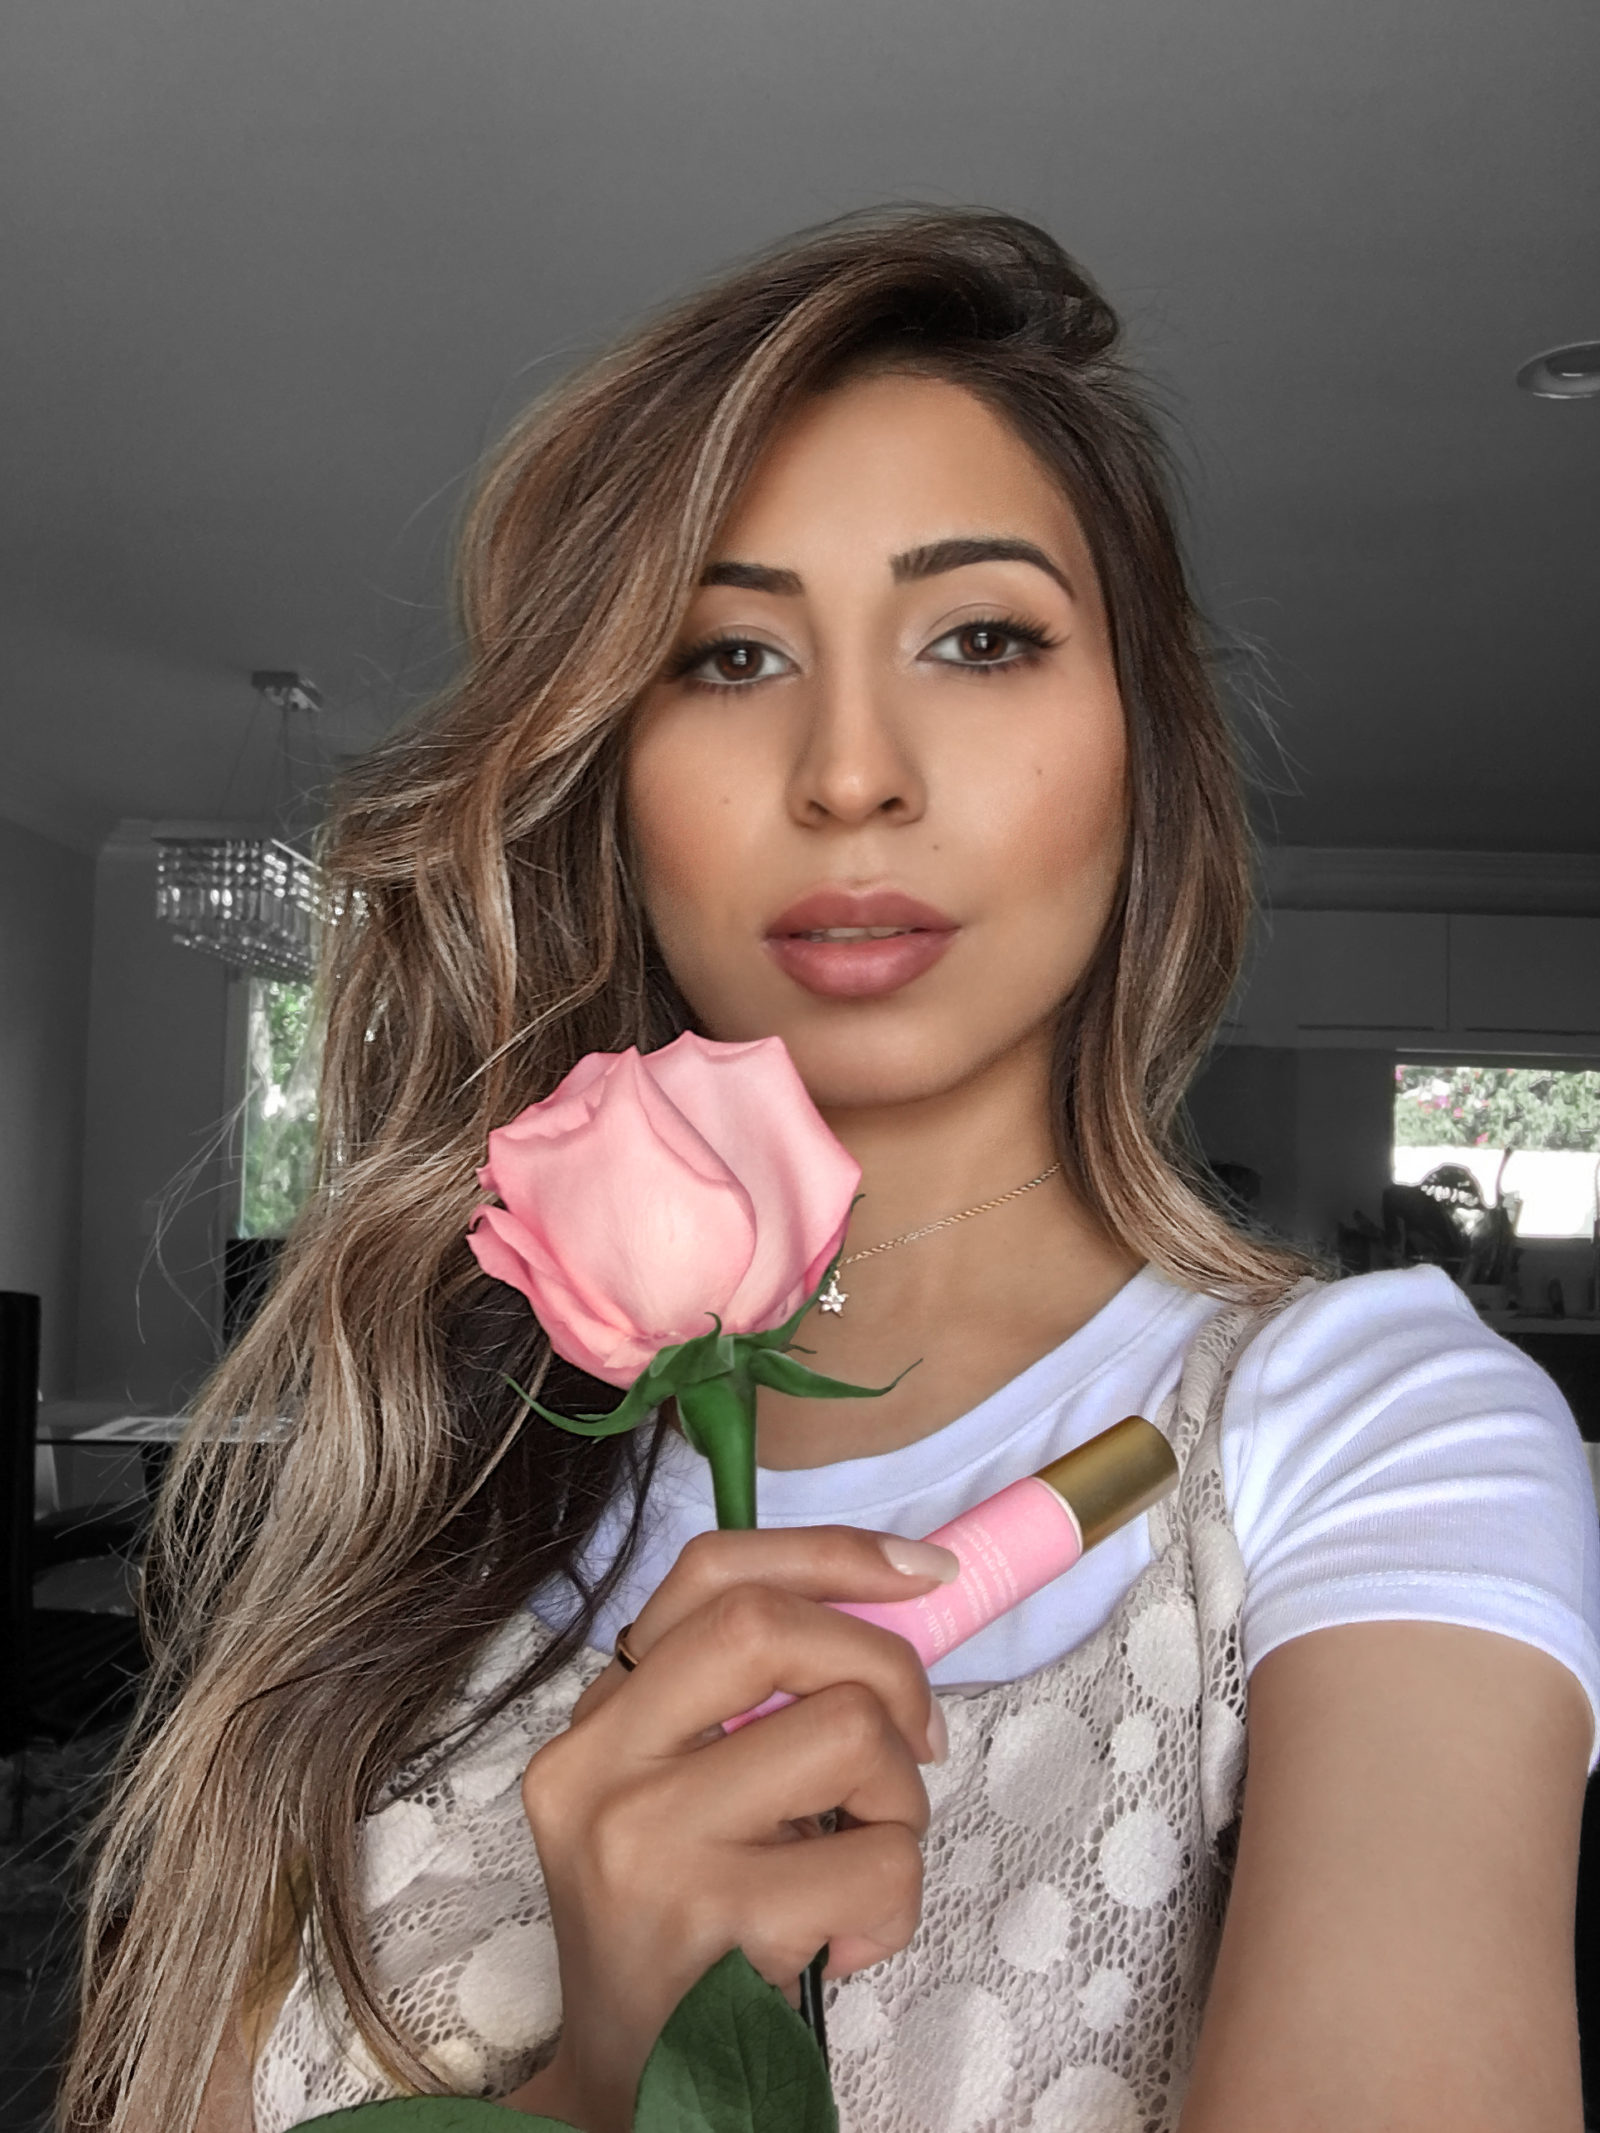 IMG_0176 PINK ROSE IPHONE SELFIE_R